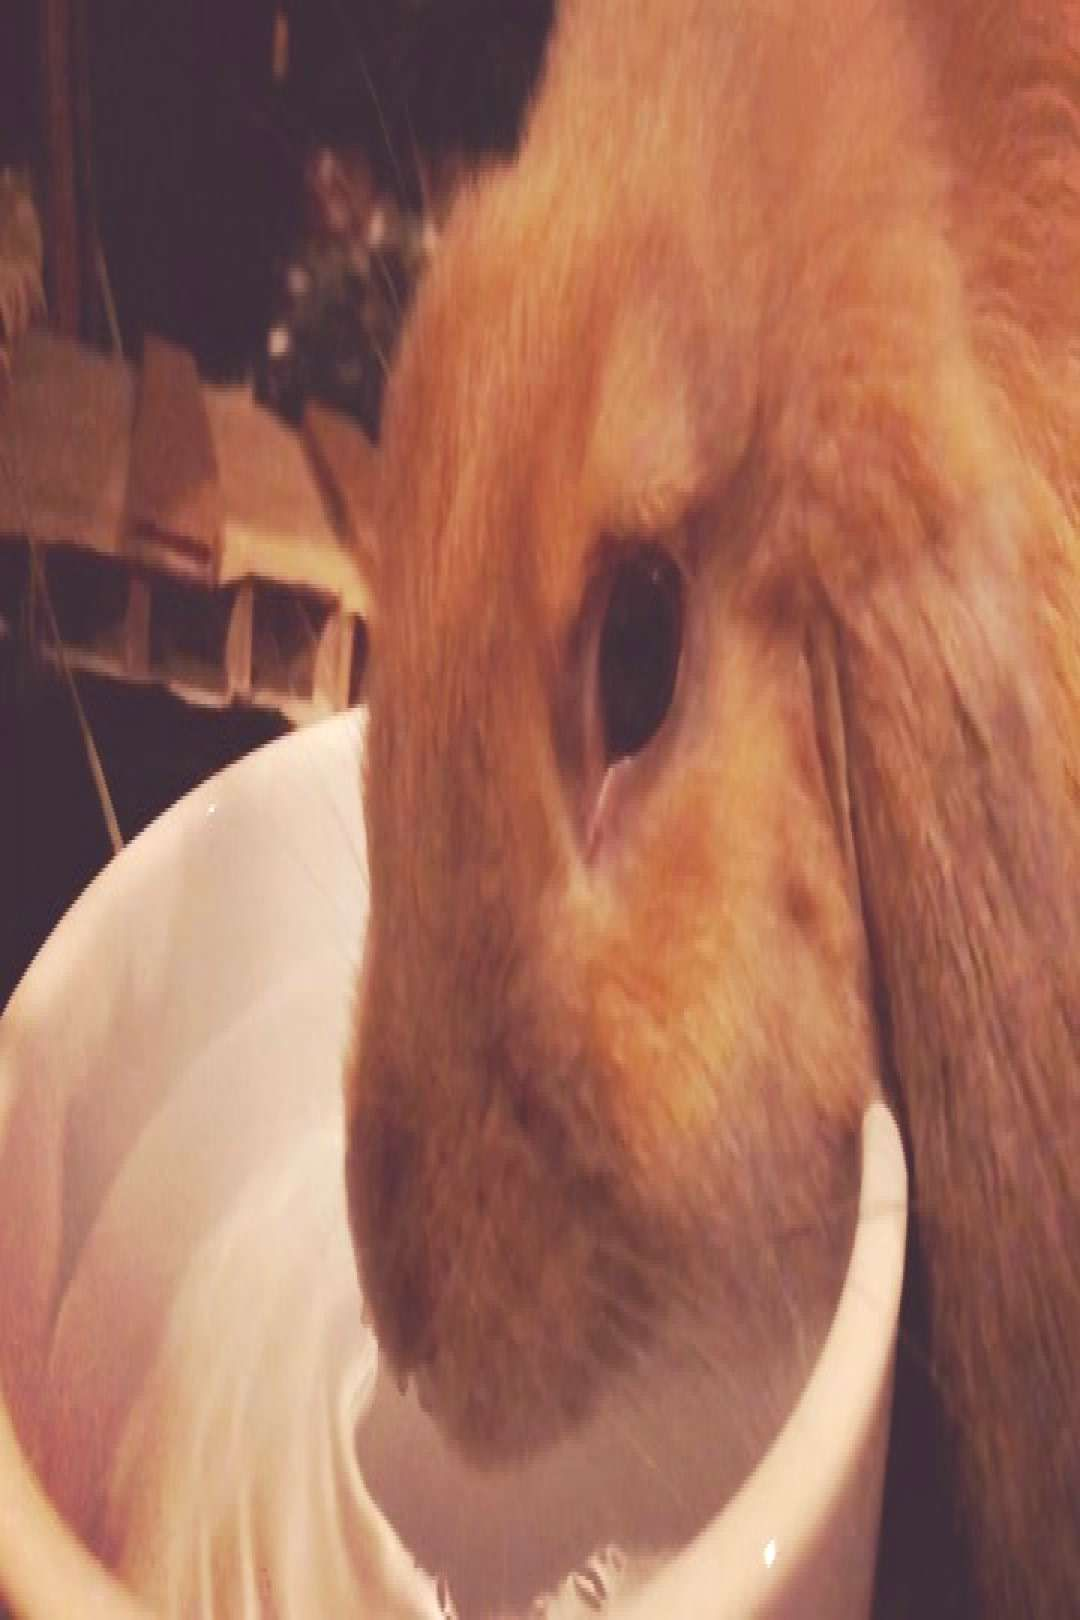 #rabbitsofinstagra #thirstythursday #slomovideo #drinkwater #drinking #water #on Drinking water on #thirstythursday #slomovideo #rabbitsofinstagraYou can find Drink water and more on our website.Drinking water on #thirstythursday #sl...